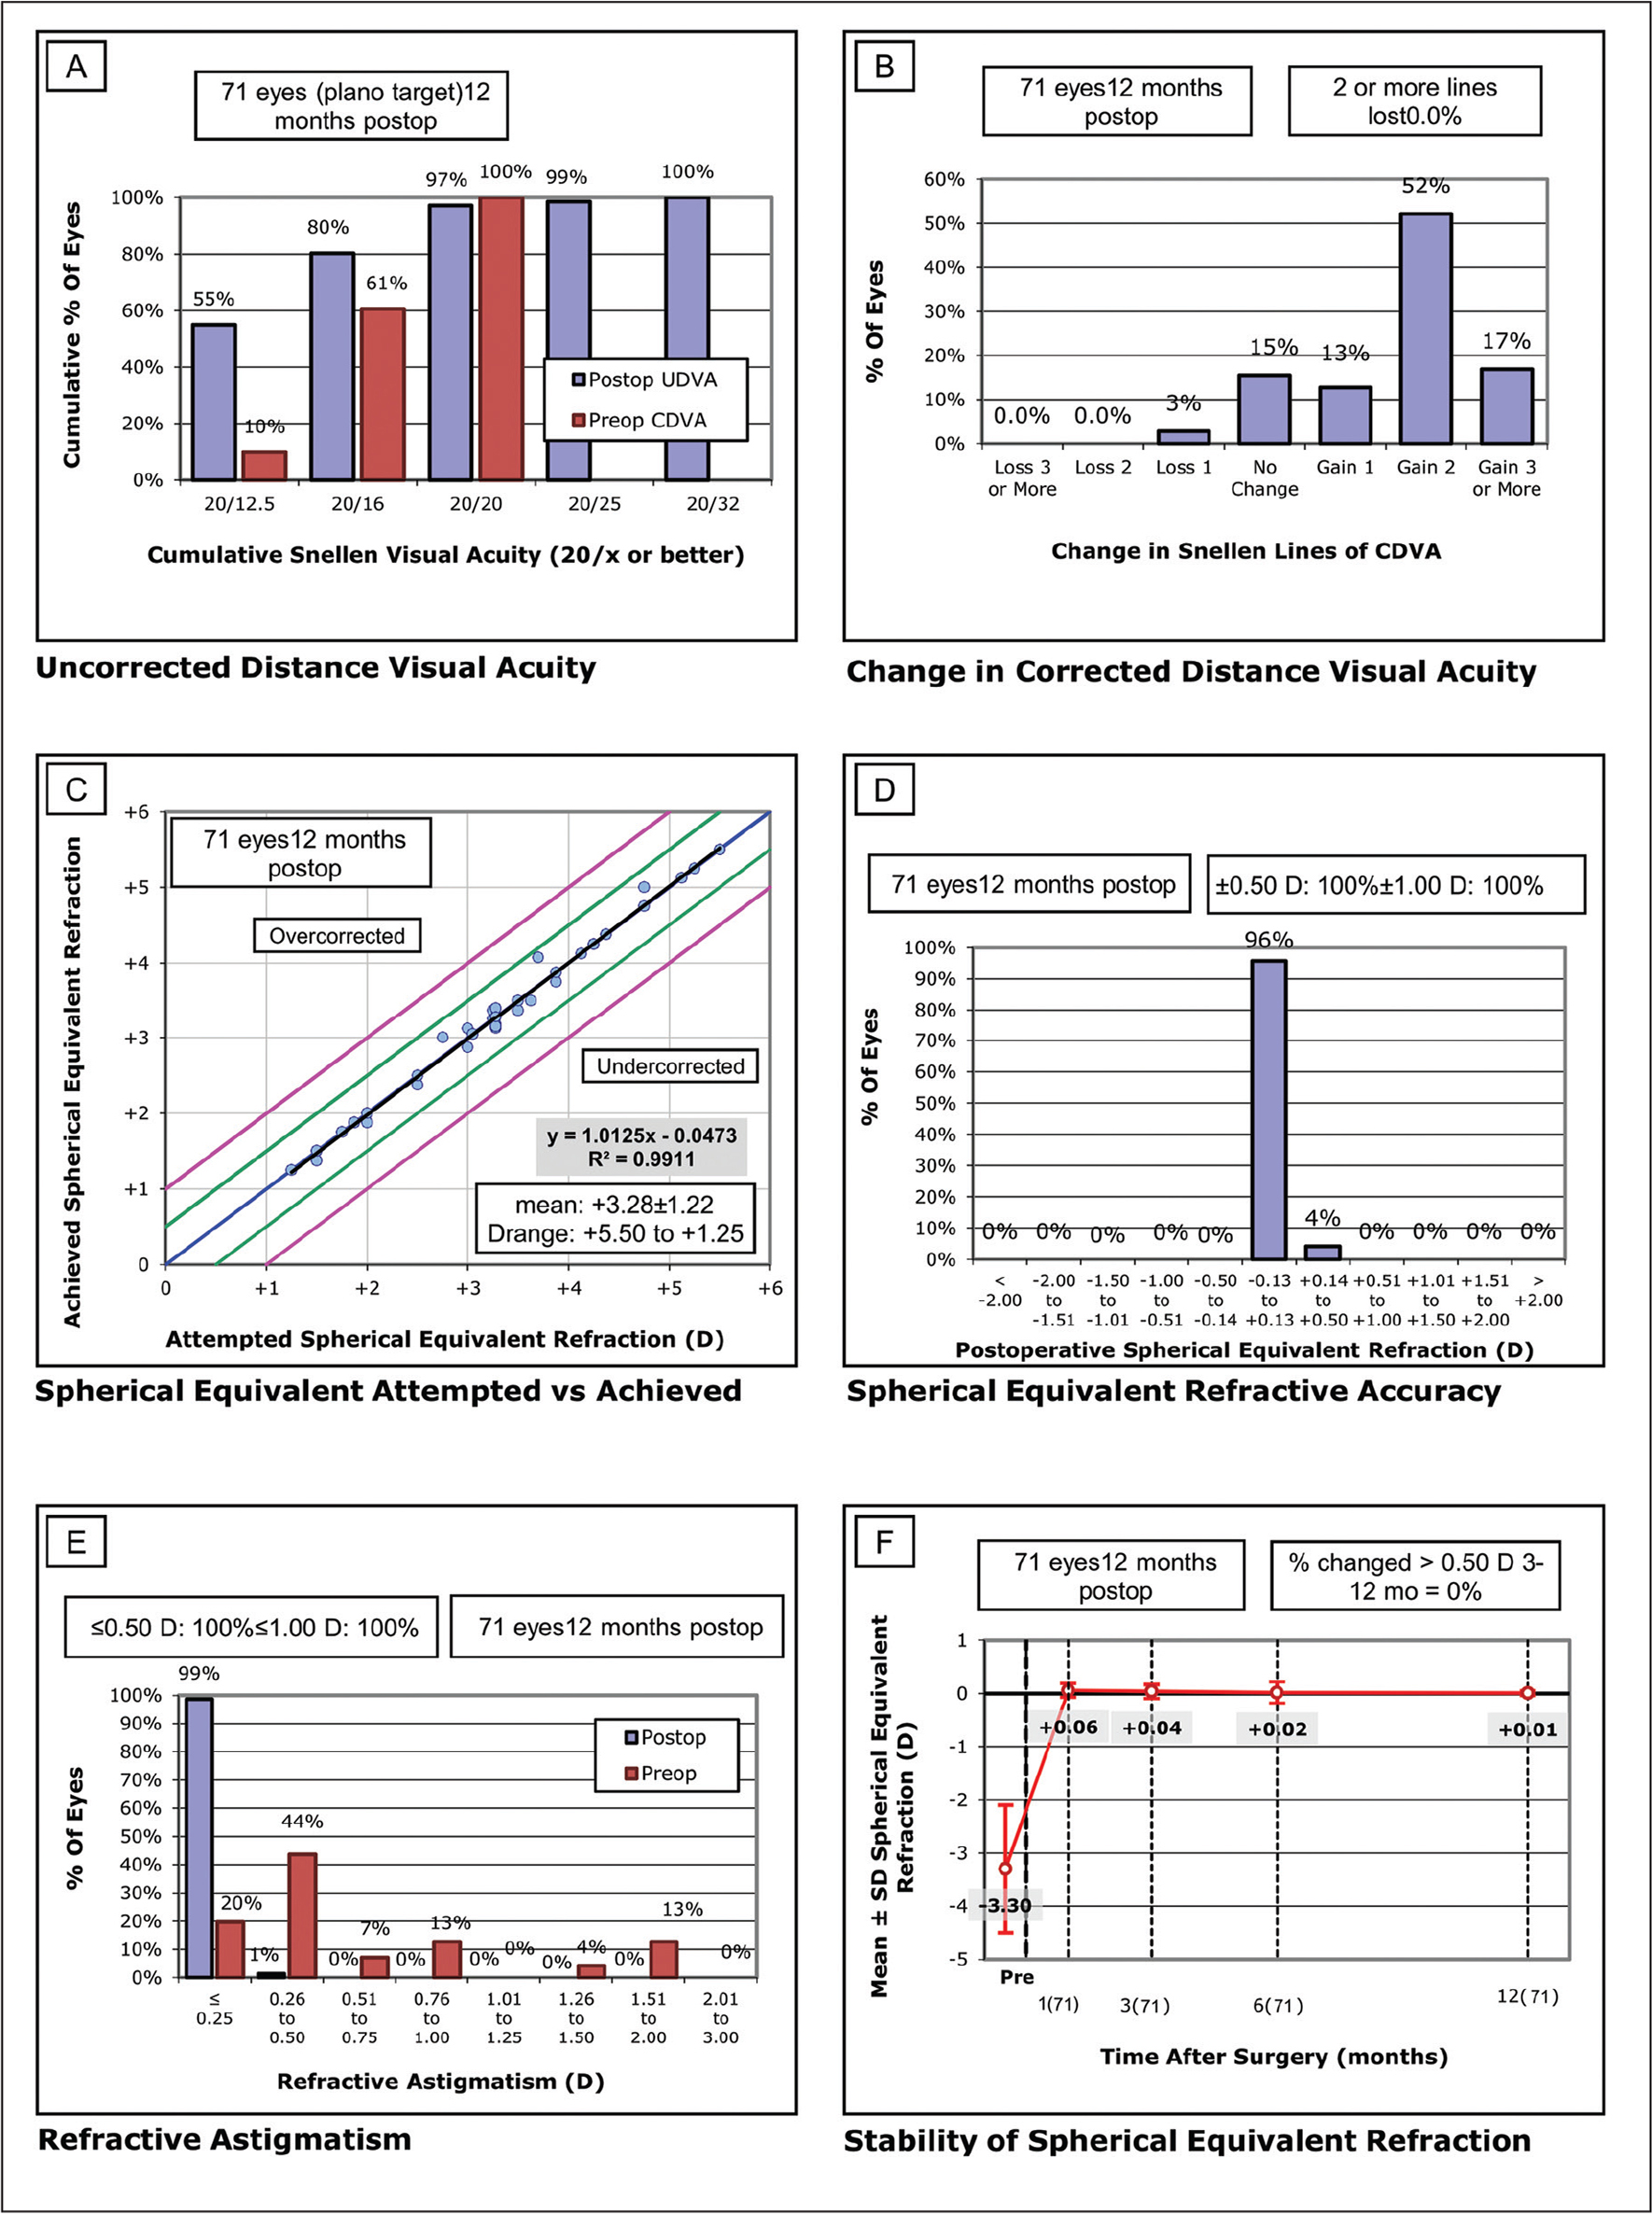 Standard graphs for refractive visual outcomes of eyes with mild to moderate myopia treated by single-step transepithelial photorefractive keratectomy without mitomycin C. The figure demonstrates results of (A) postoperative uncorrected distance visual acuity (UDVA) vs preoperative corrected distance visual acuity (CDVA), (B) change of CDVA in terms of numbers of decimal lines, (C) spherical equivalent correction attempted vs achieved, (D) accuracy of spherical equivalent correction, (E) accuracy of refractive astigmatism correction, and (F) stability of postoperative spherical equivalent refraction. D = diopters